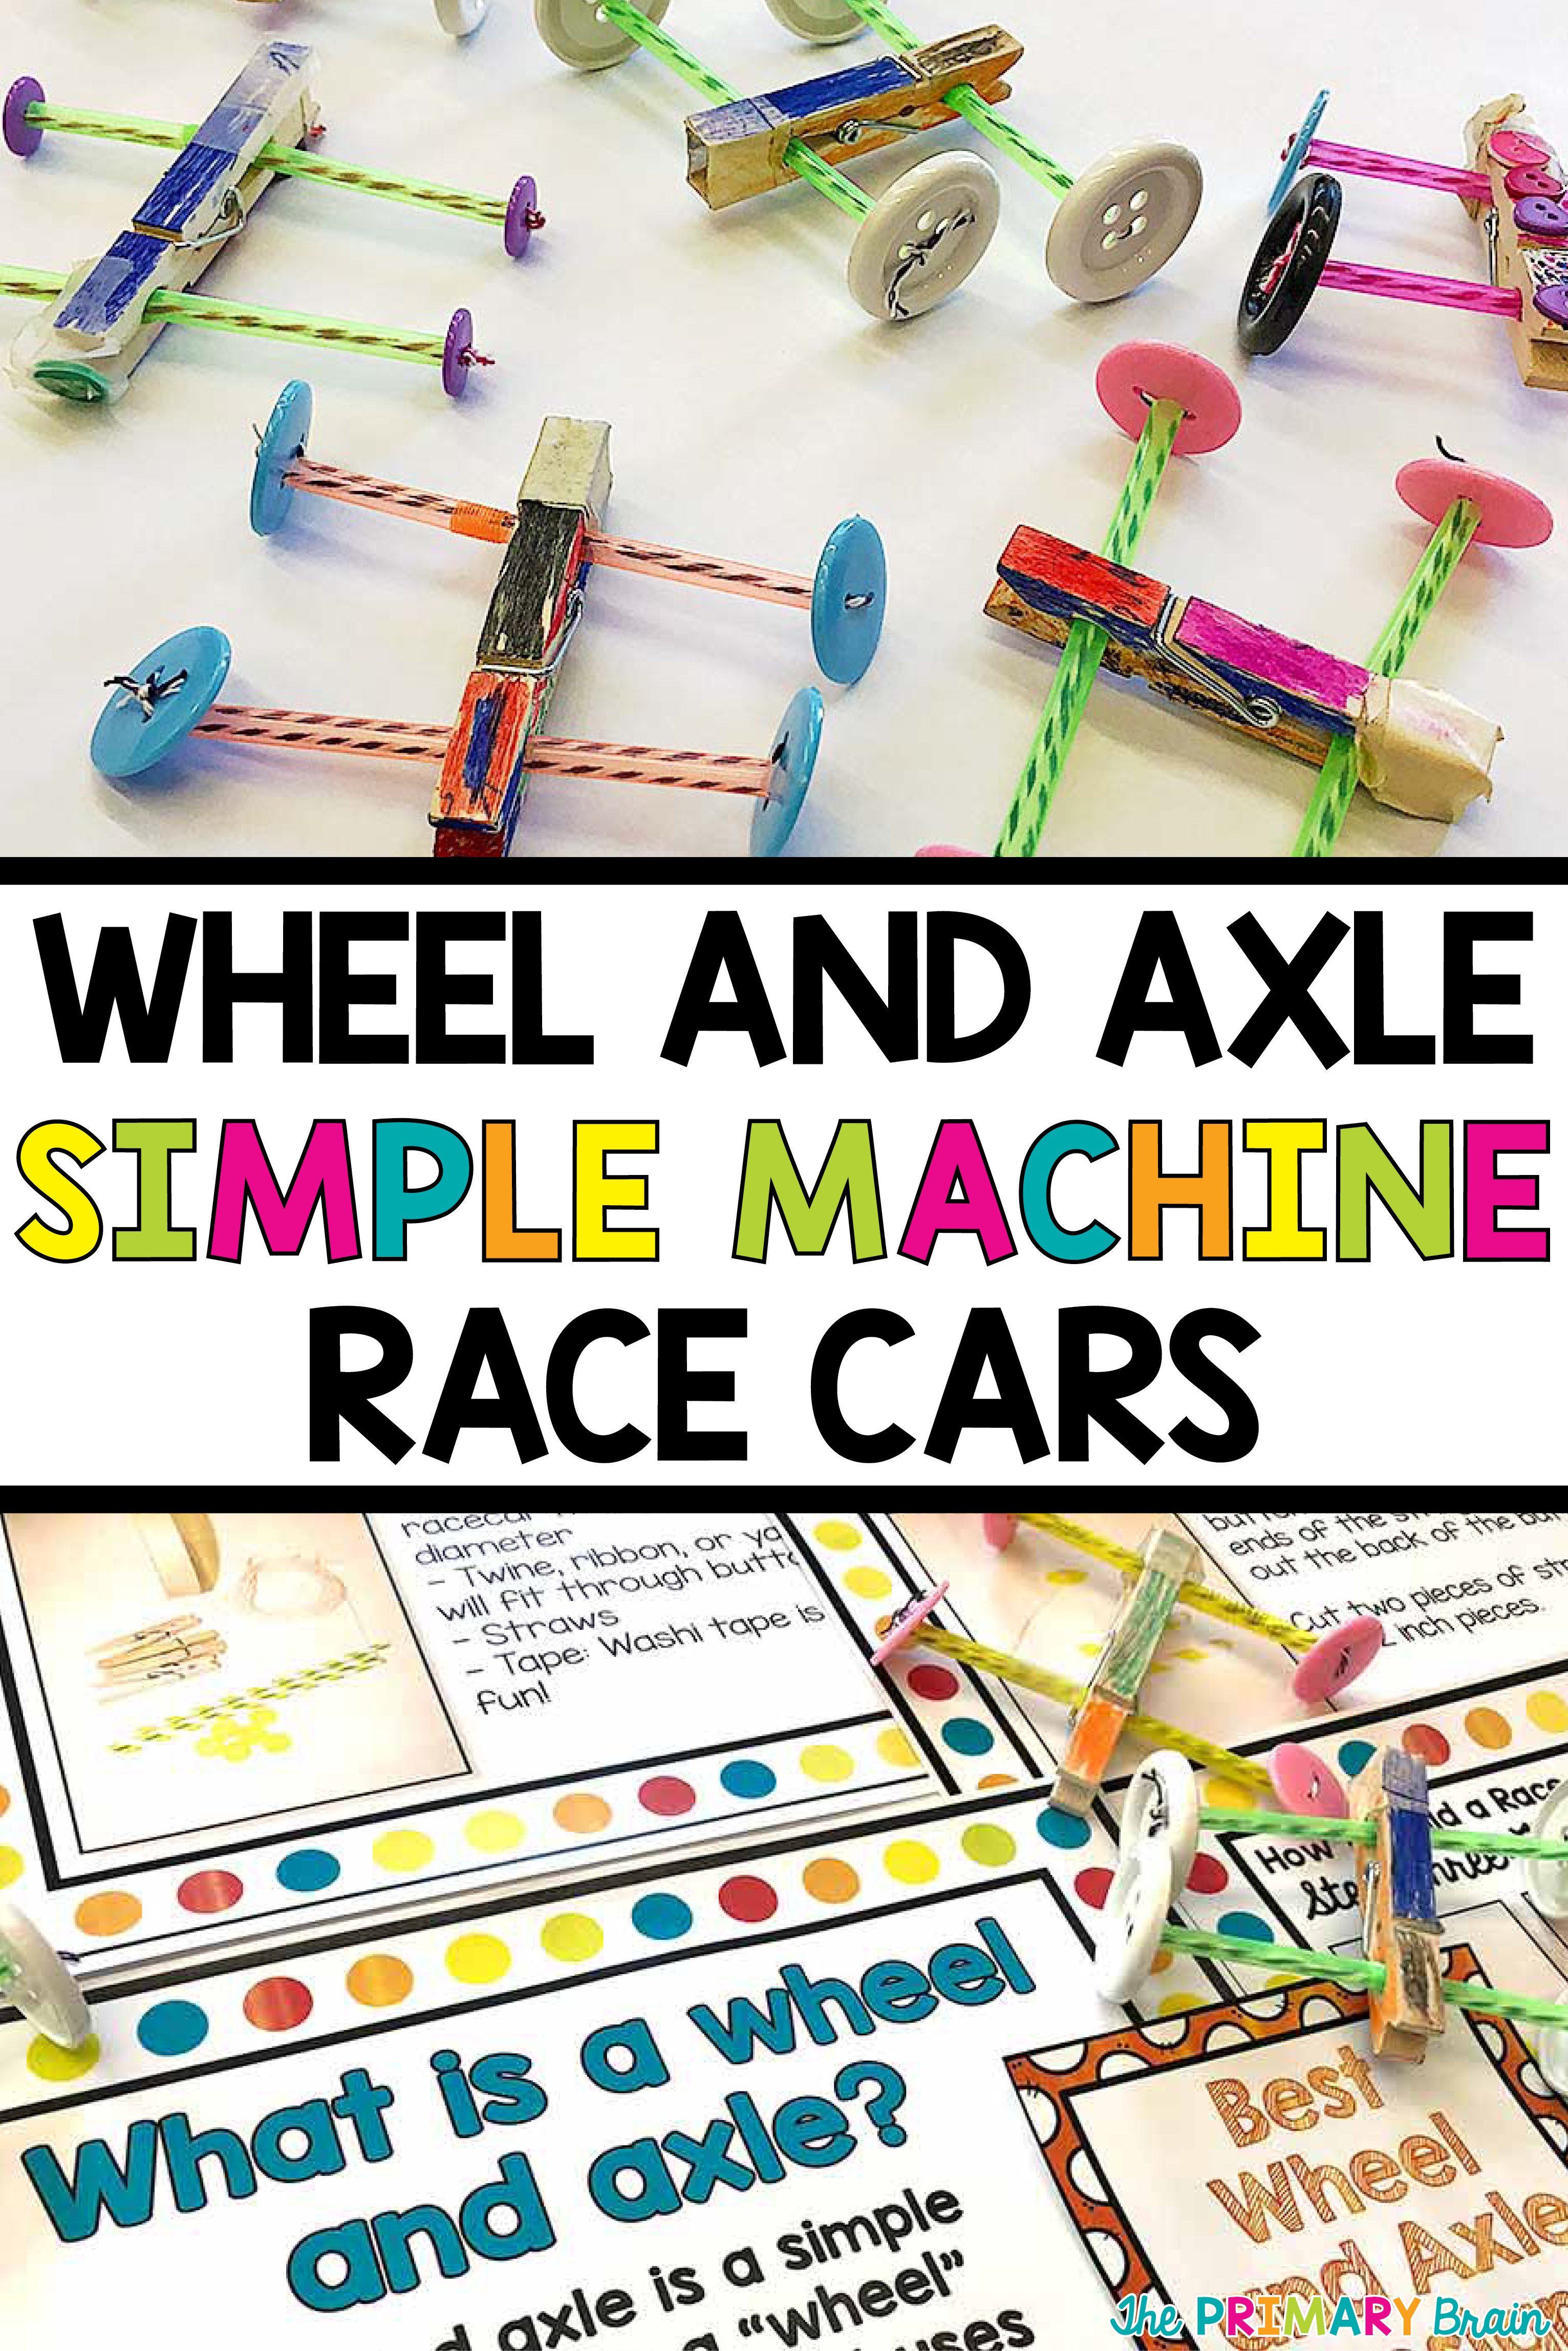 Learn About Simple Machines By Racing Race Cars